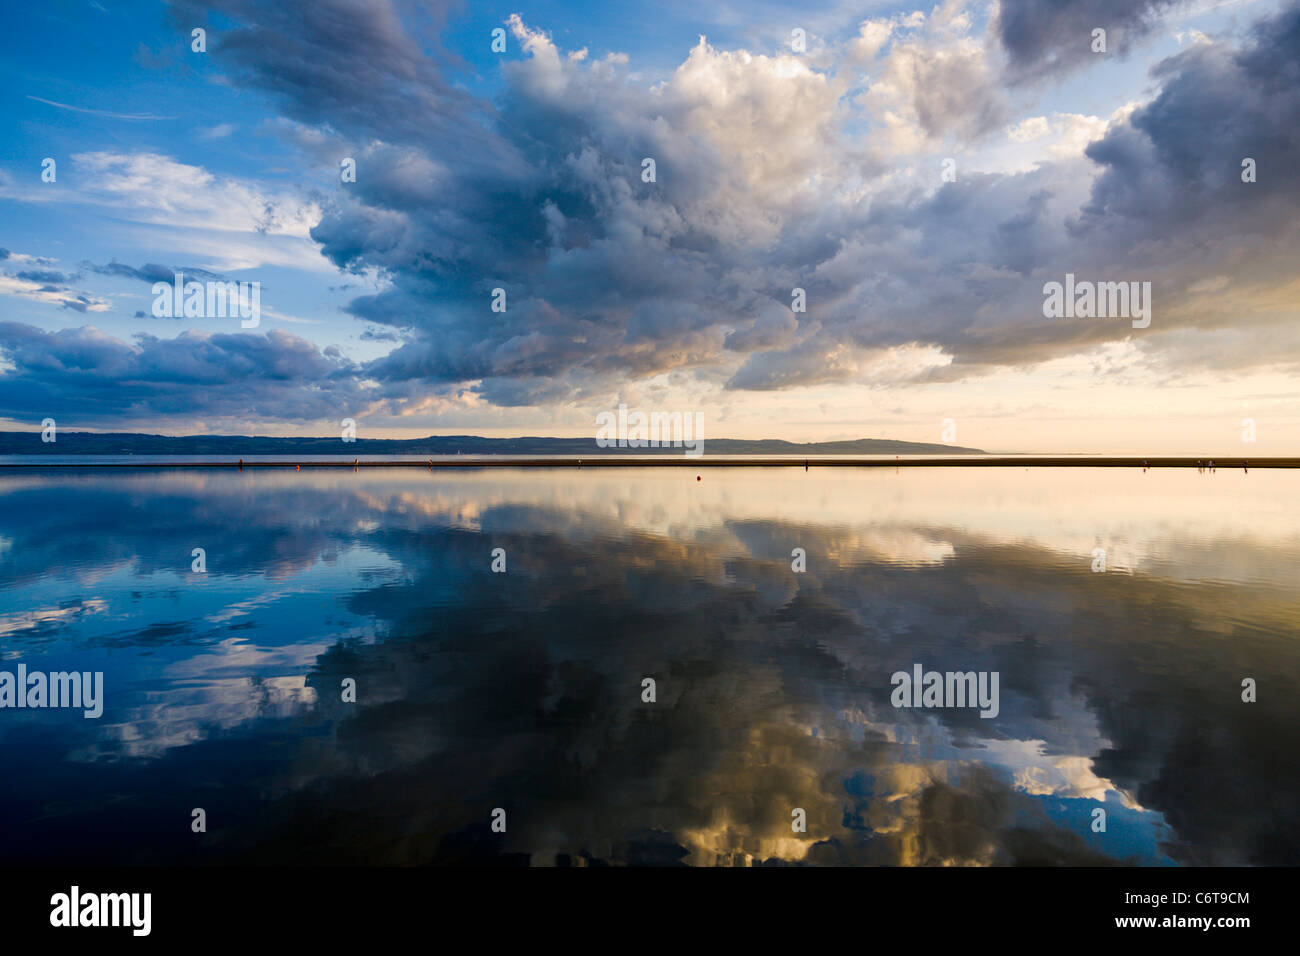 Evening light at West Kirby, Wirral, England - Stock Image